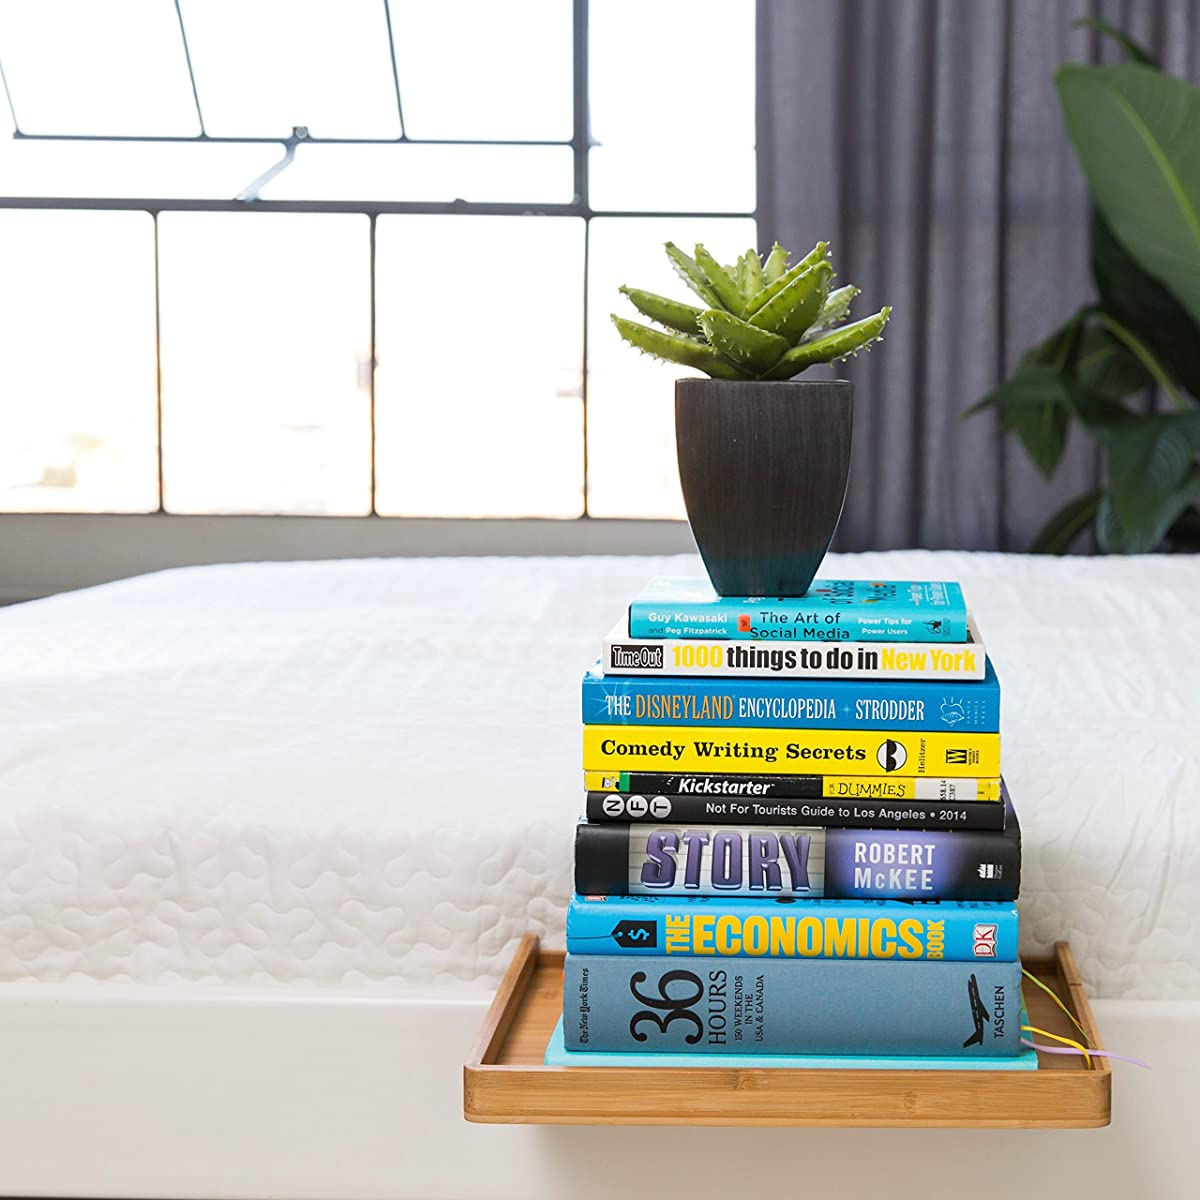 BedShelfie - Bedside Shelf / a Space-Saving Floating Nightstand for Small Bedrooms, Lofts, Modern Dorms & Contemporary Bunk Beds / Minimalist Caddy Organizer (Natural Bamboo Color)